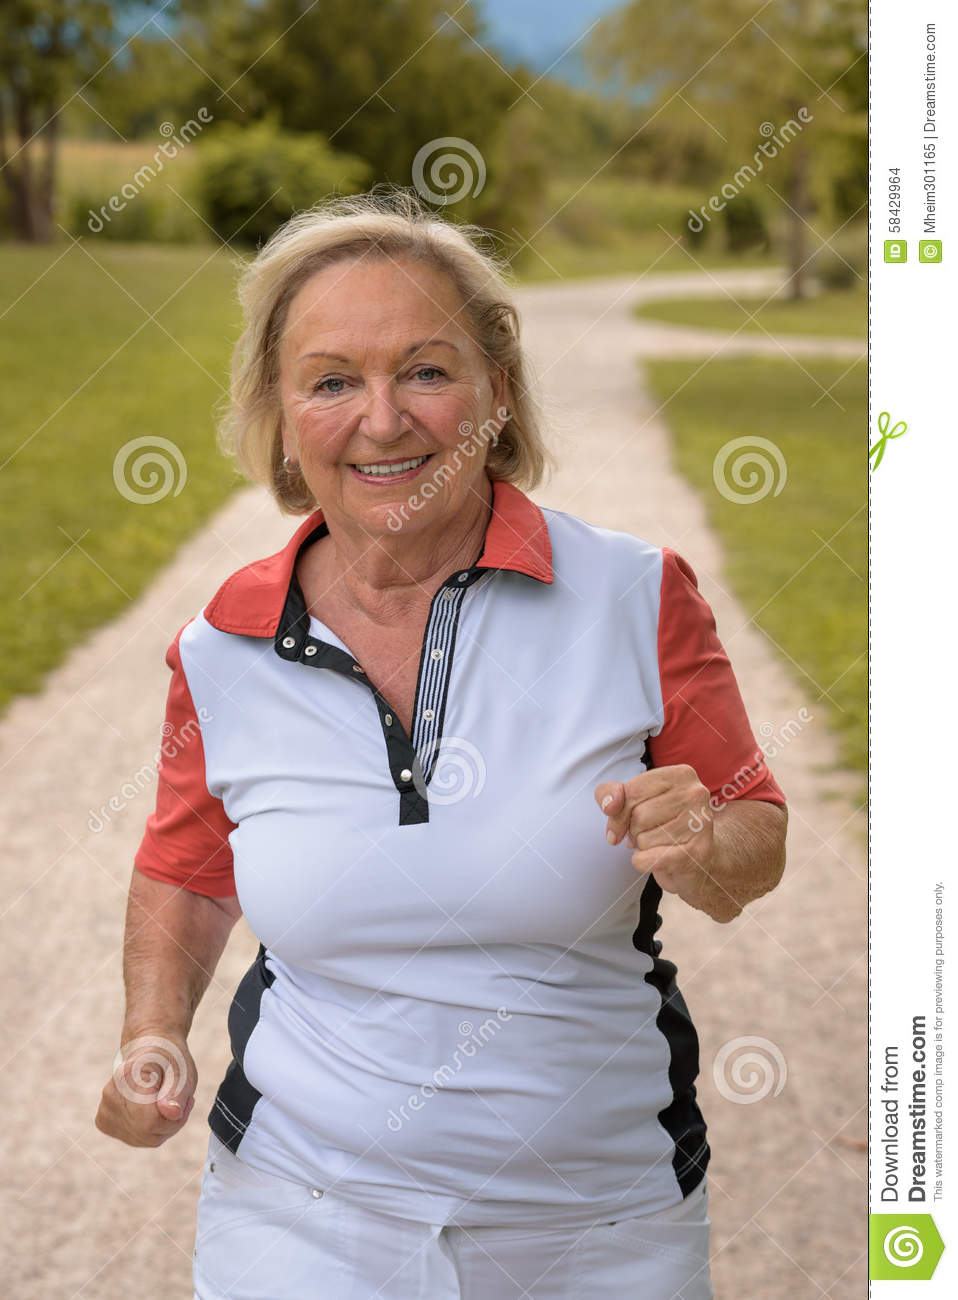 Healthy active elderly woman out jogging